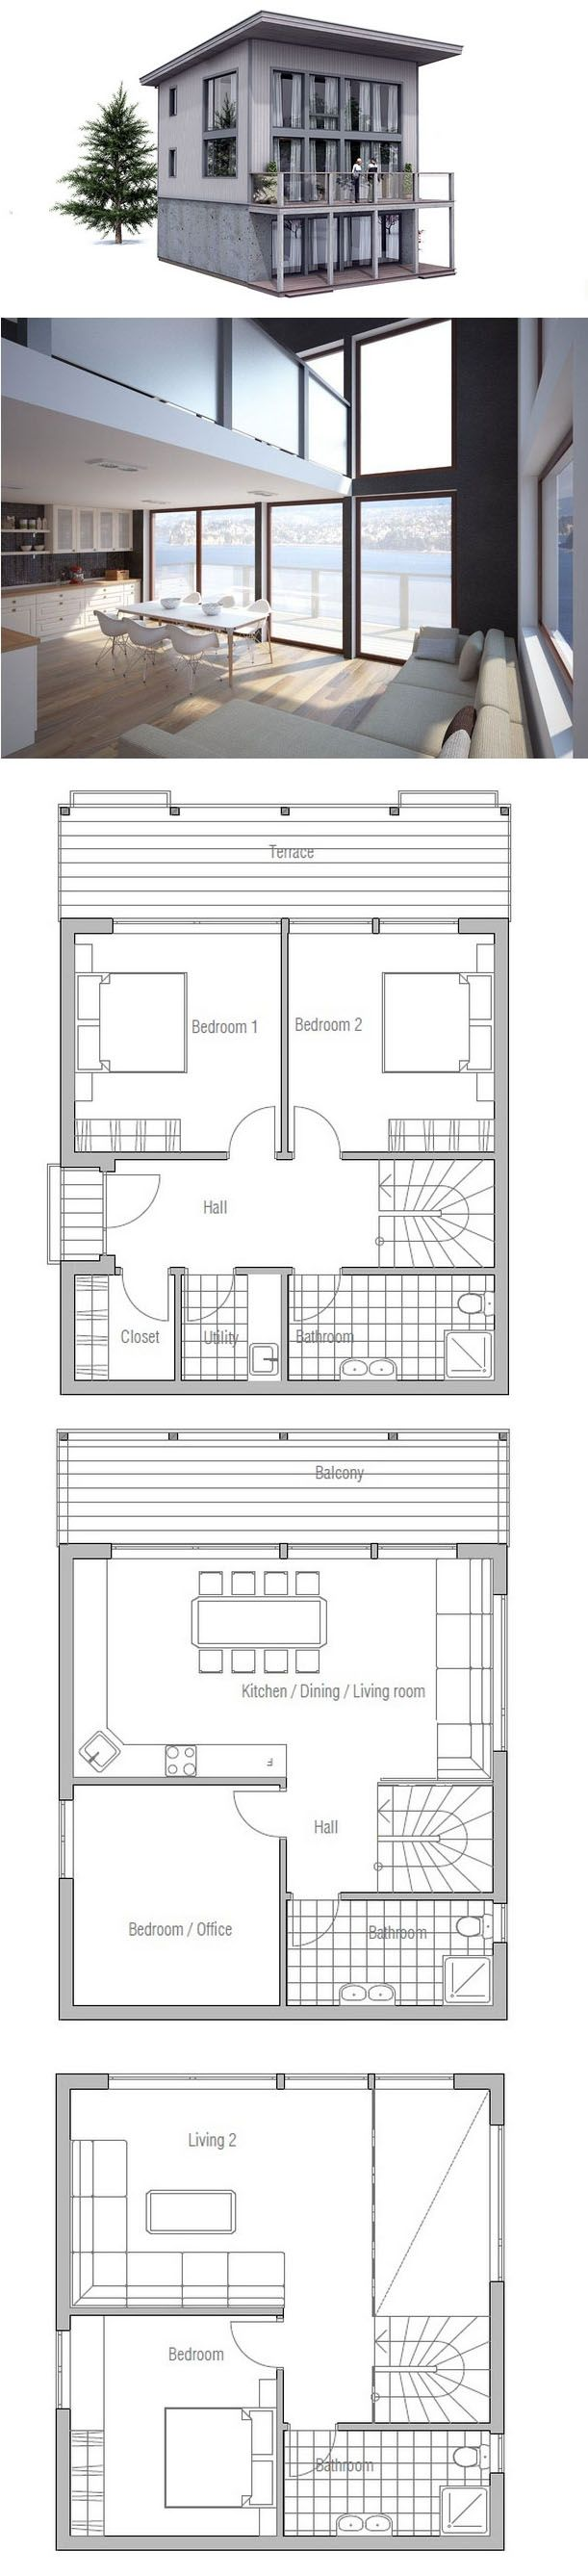 Small House Plan to tiny lot Drawings Pinterest Small house